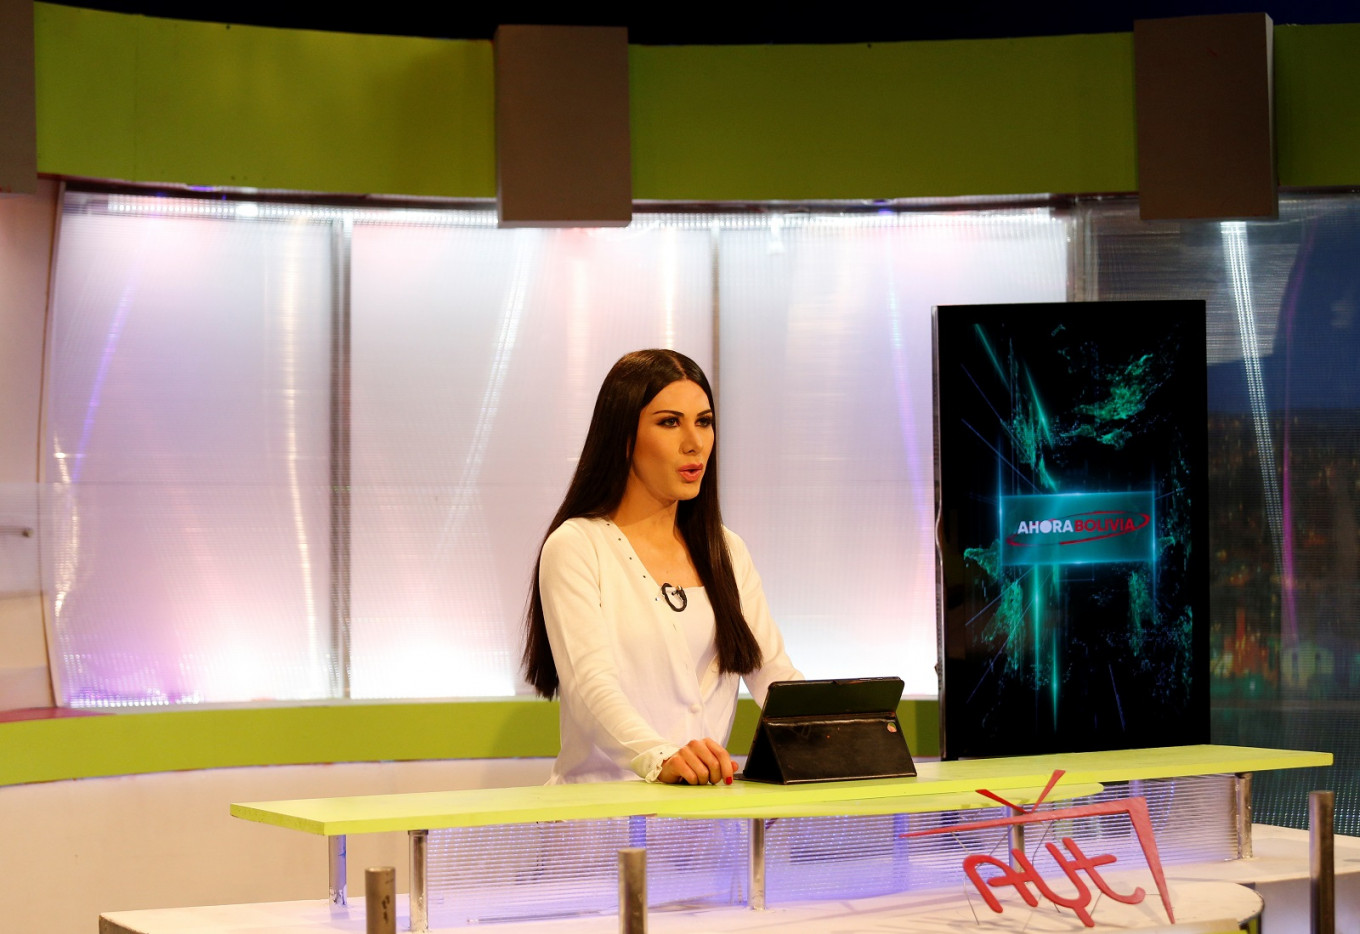 Bolivia's first transgender news anchor puts LGBTQ issues front and center